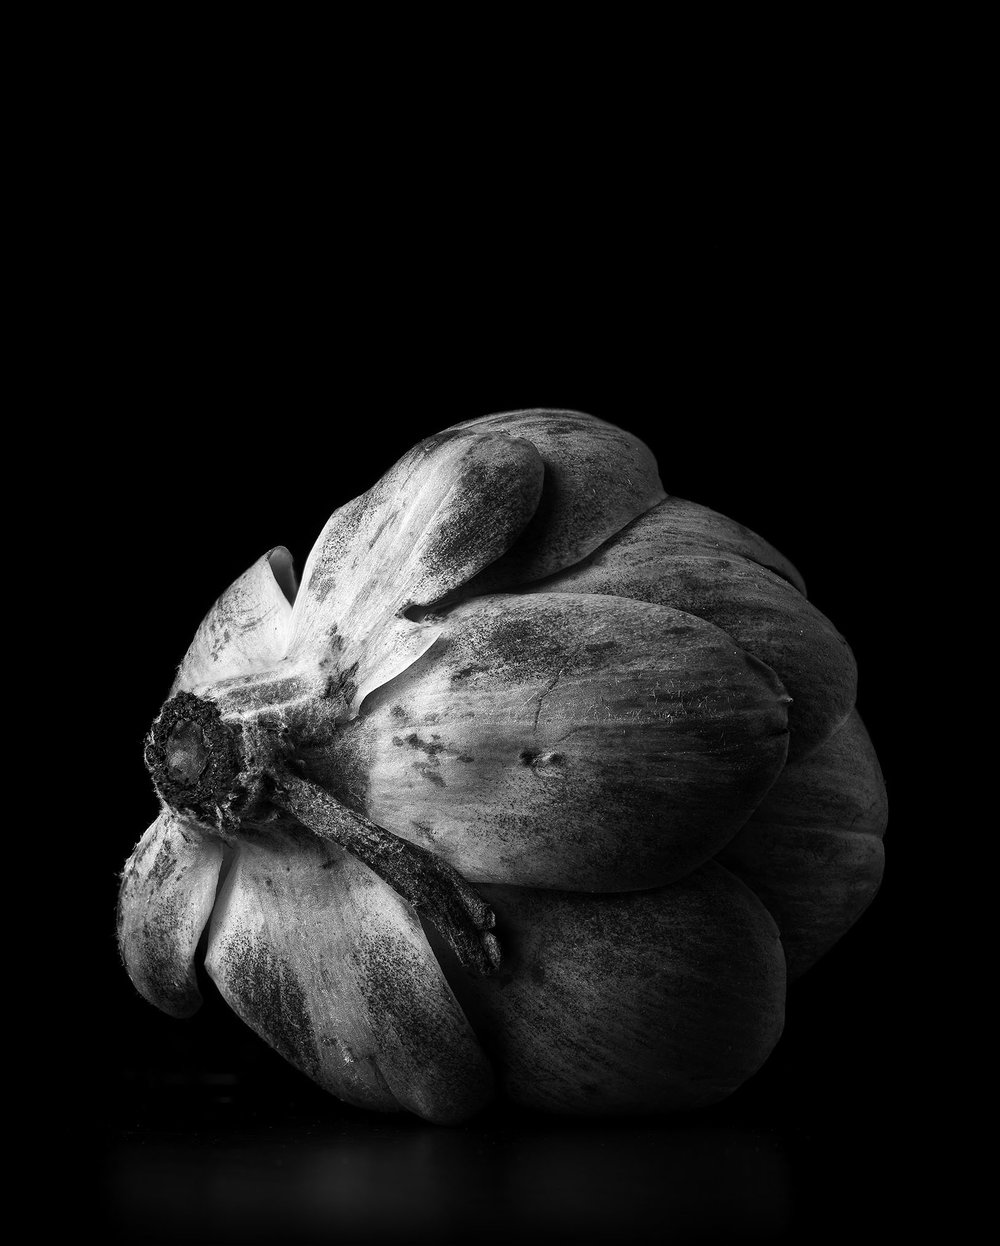 Artichoke-B&W-Final.jpg